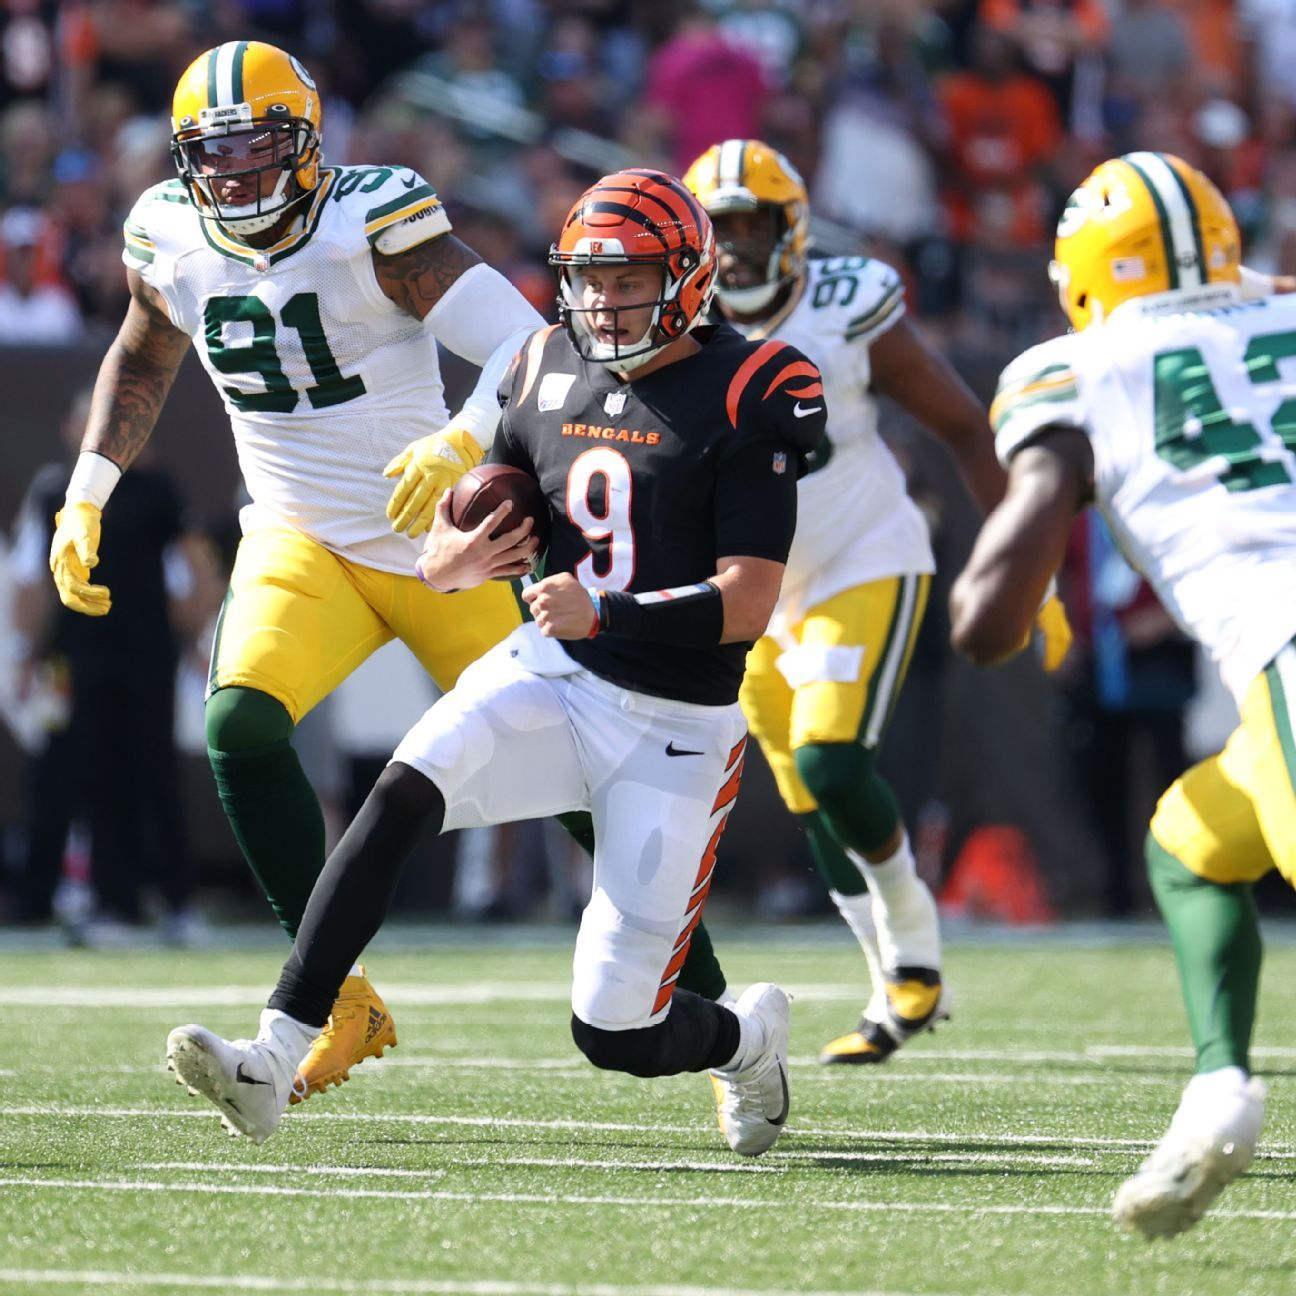 Cincinnati Bengals' QB Joe Burrow on 'voice rest' after throat contusion, expected to play against the Detroit Lions